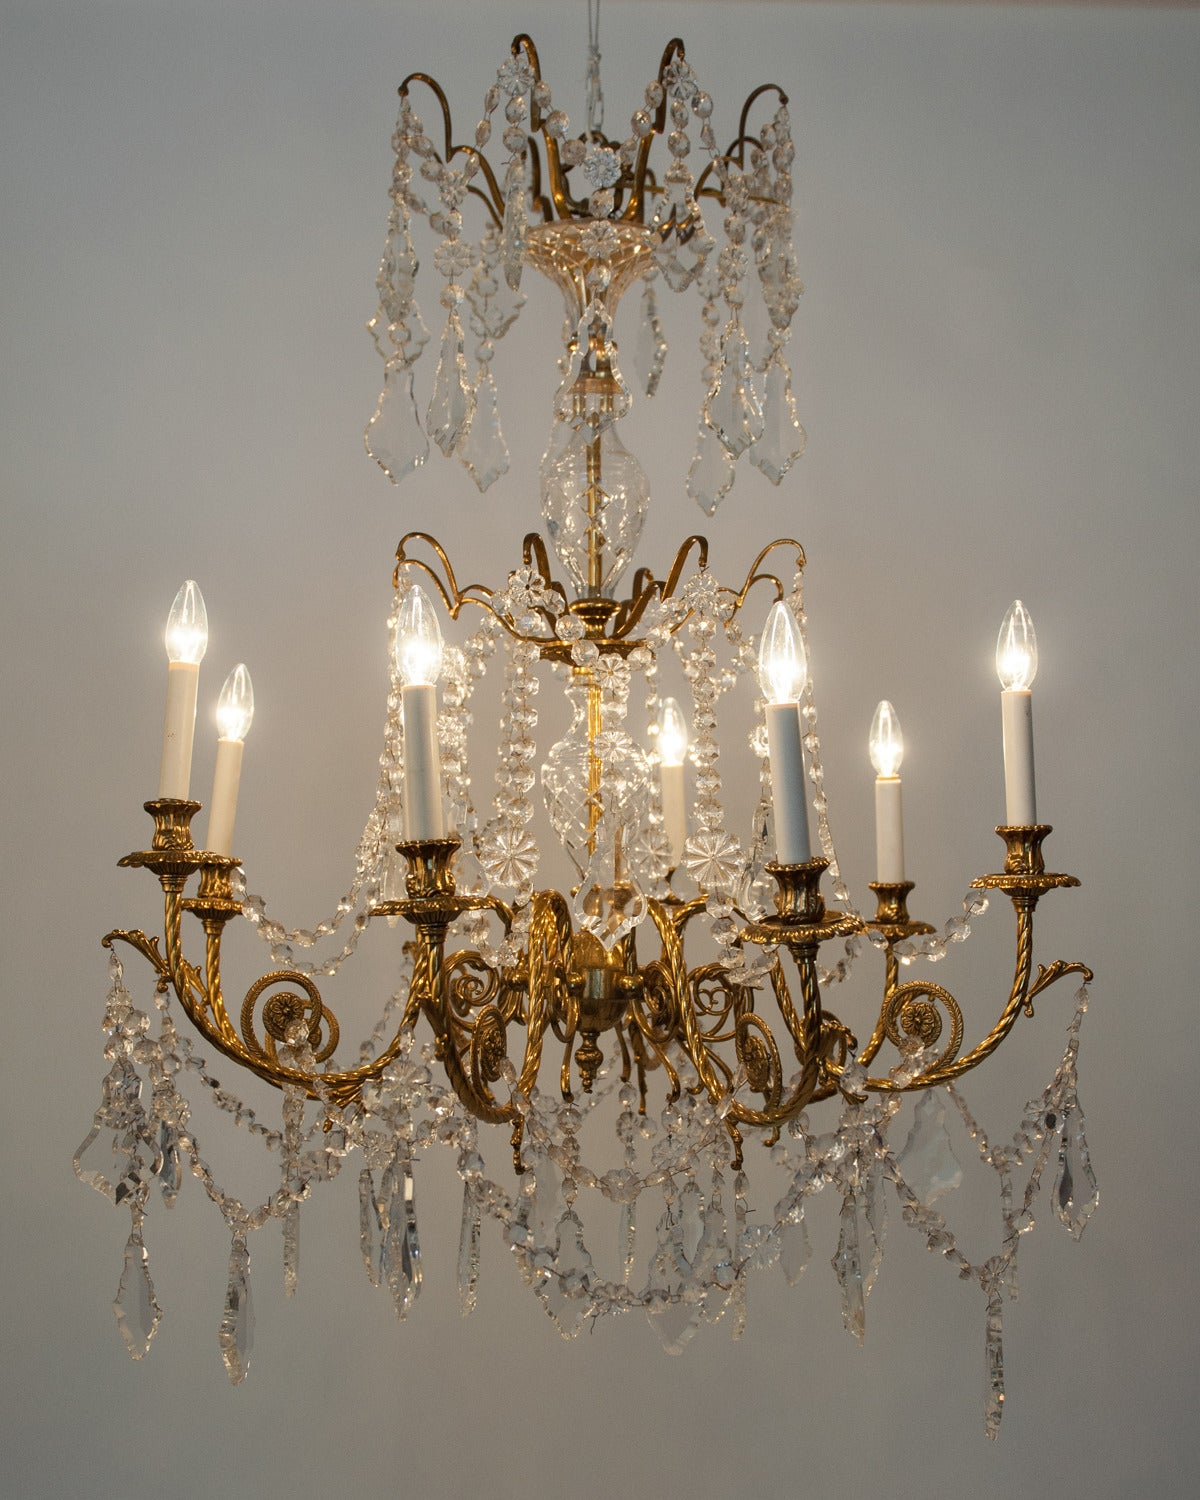 Antique French Cut Crystal Chandelier For Sale at 1stdibs